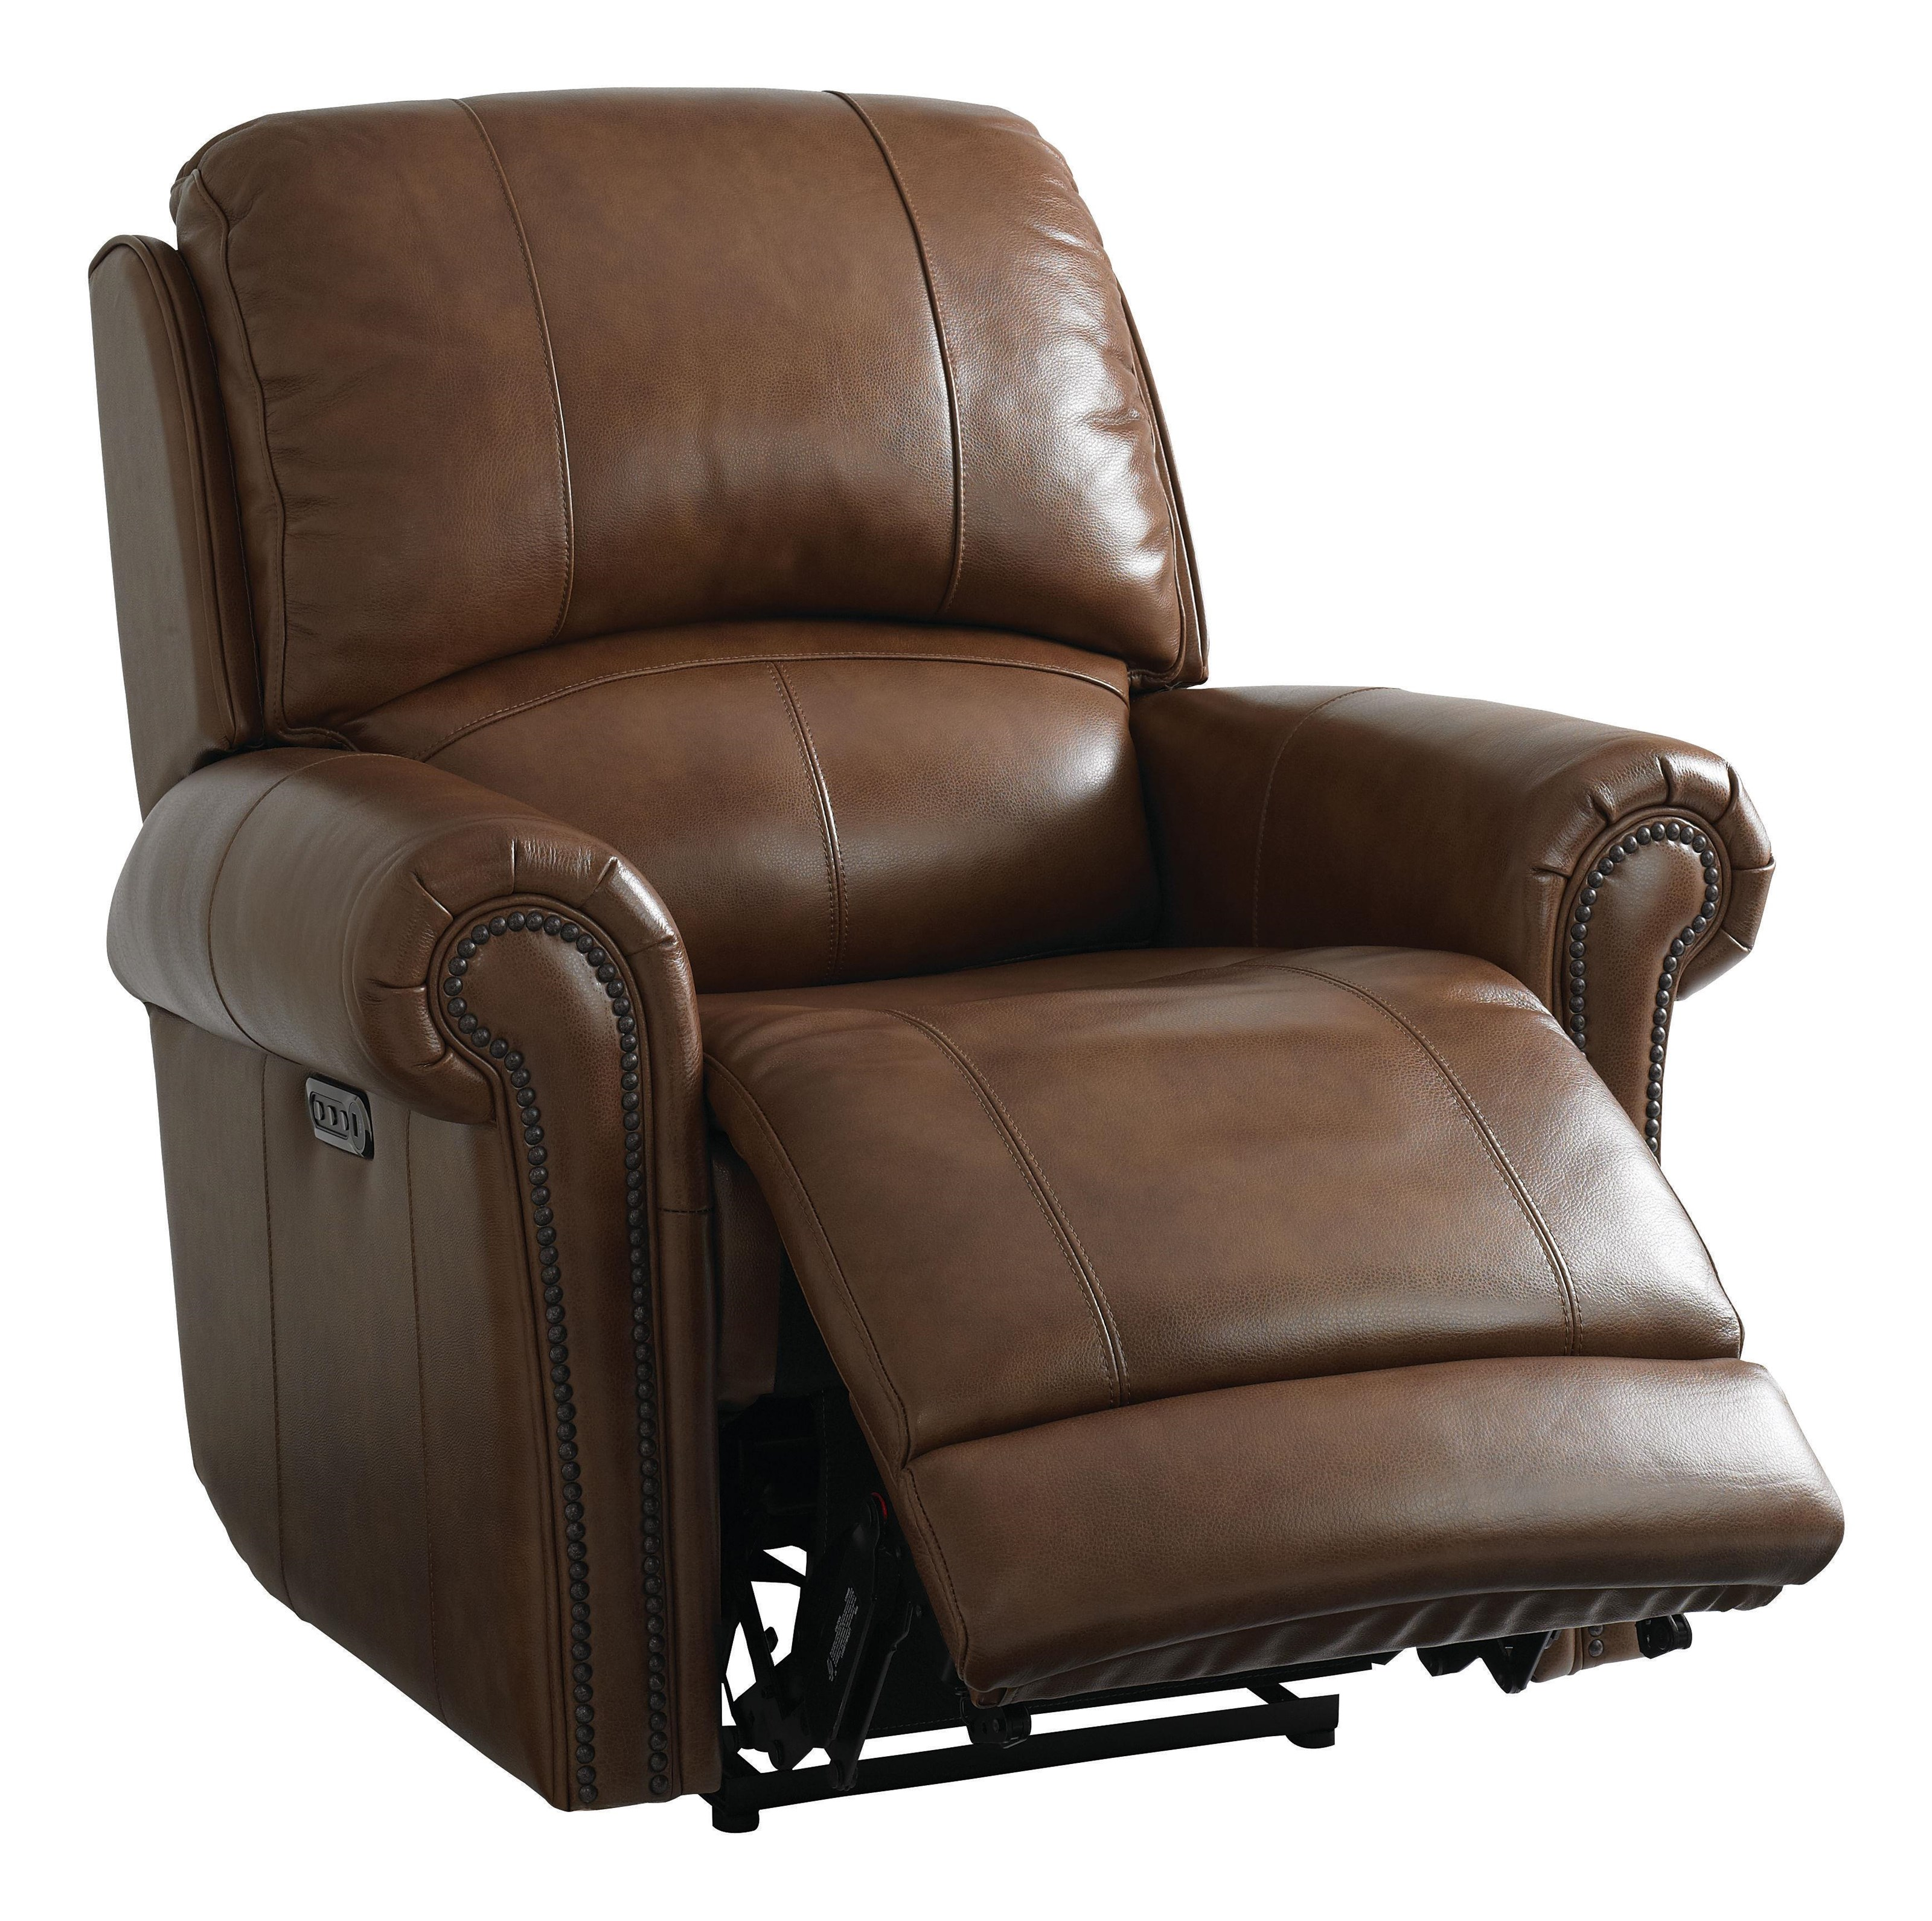 Olsen Power Leather Recliner W/ Head, Foot,